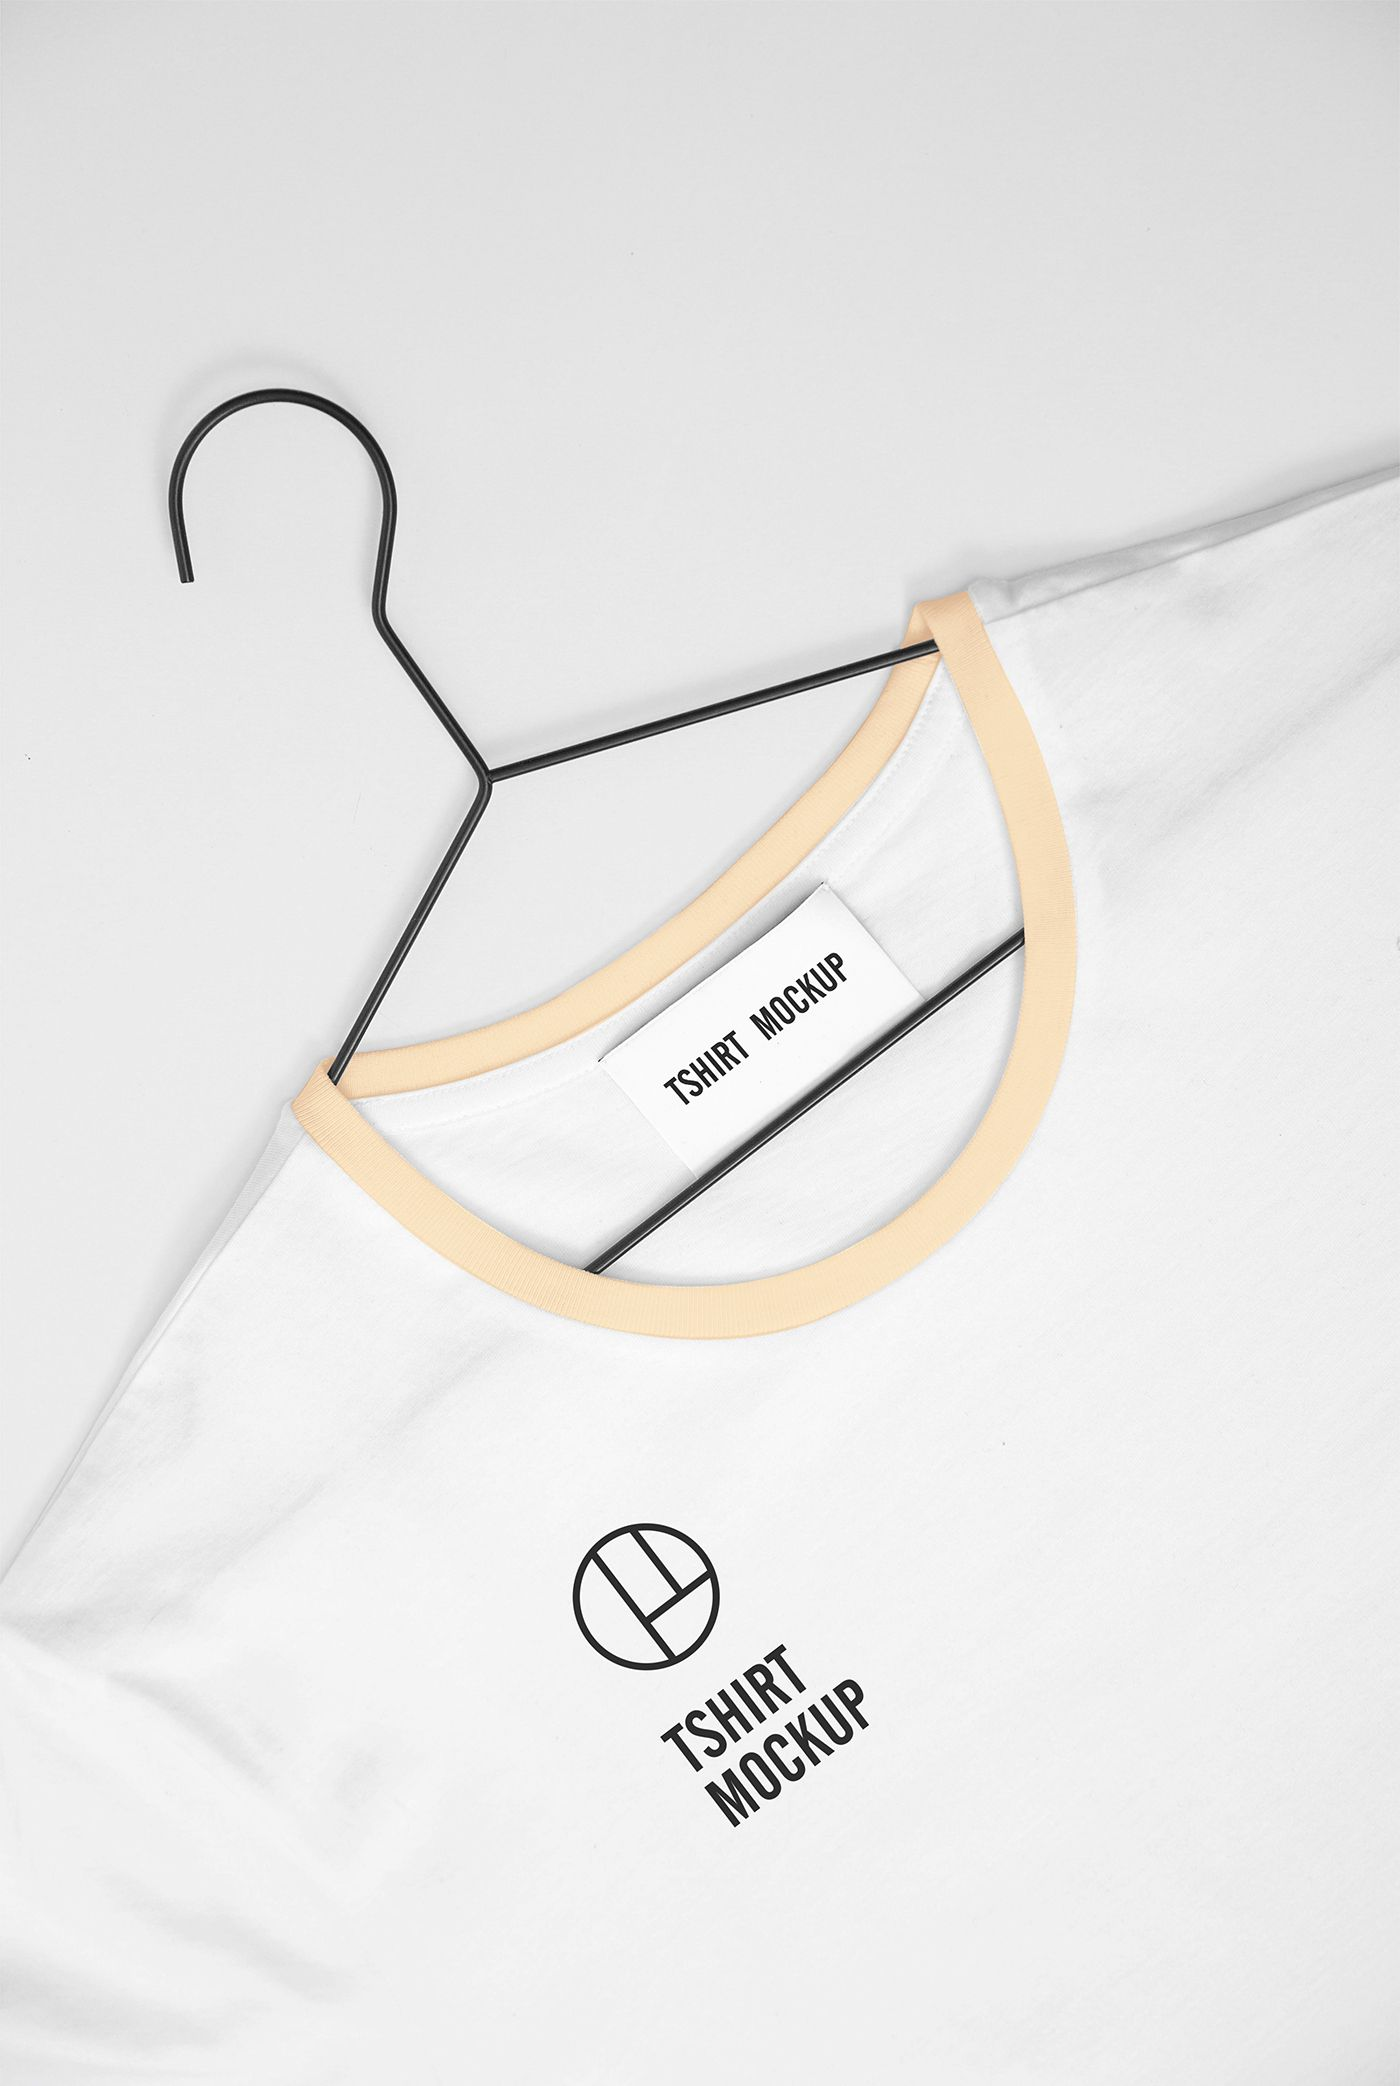 Download White Colored T Shirt Mockup For Presenting Your Design In A Realistic Way Clothes Mockup Free Tshirt Mockup Clothing Mockup